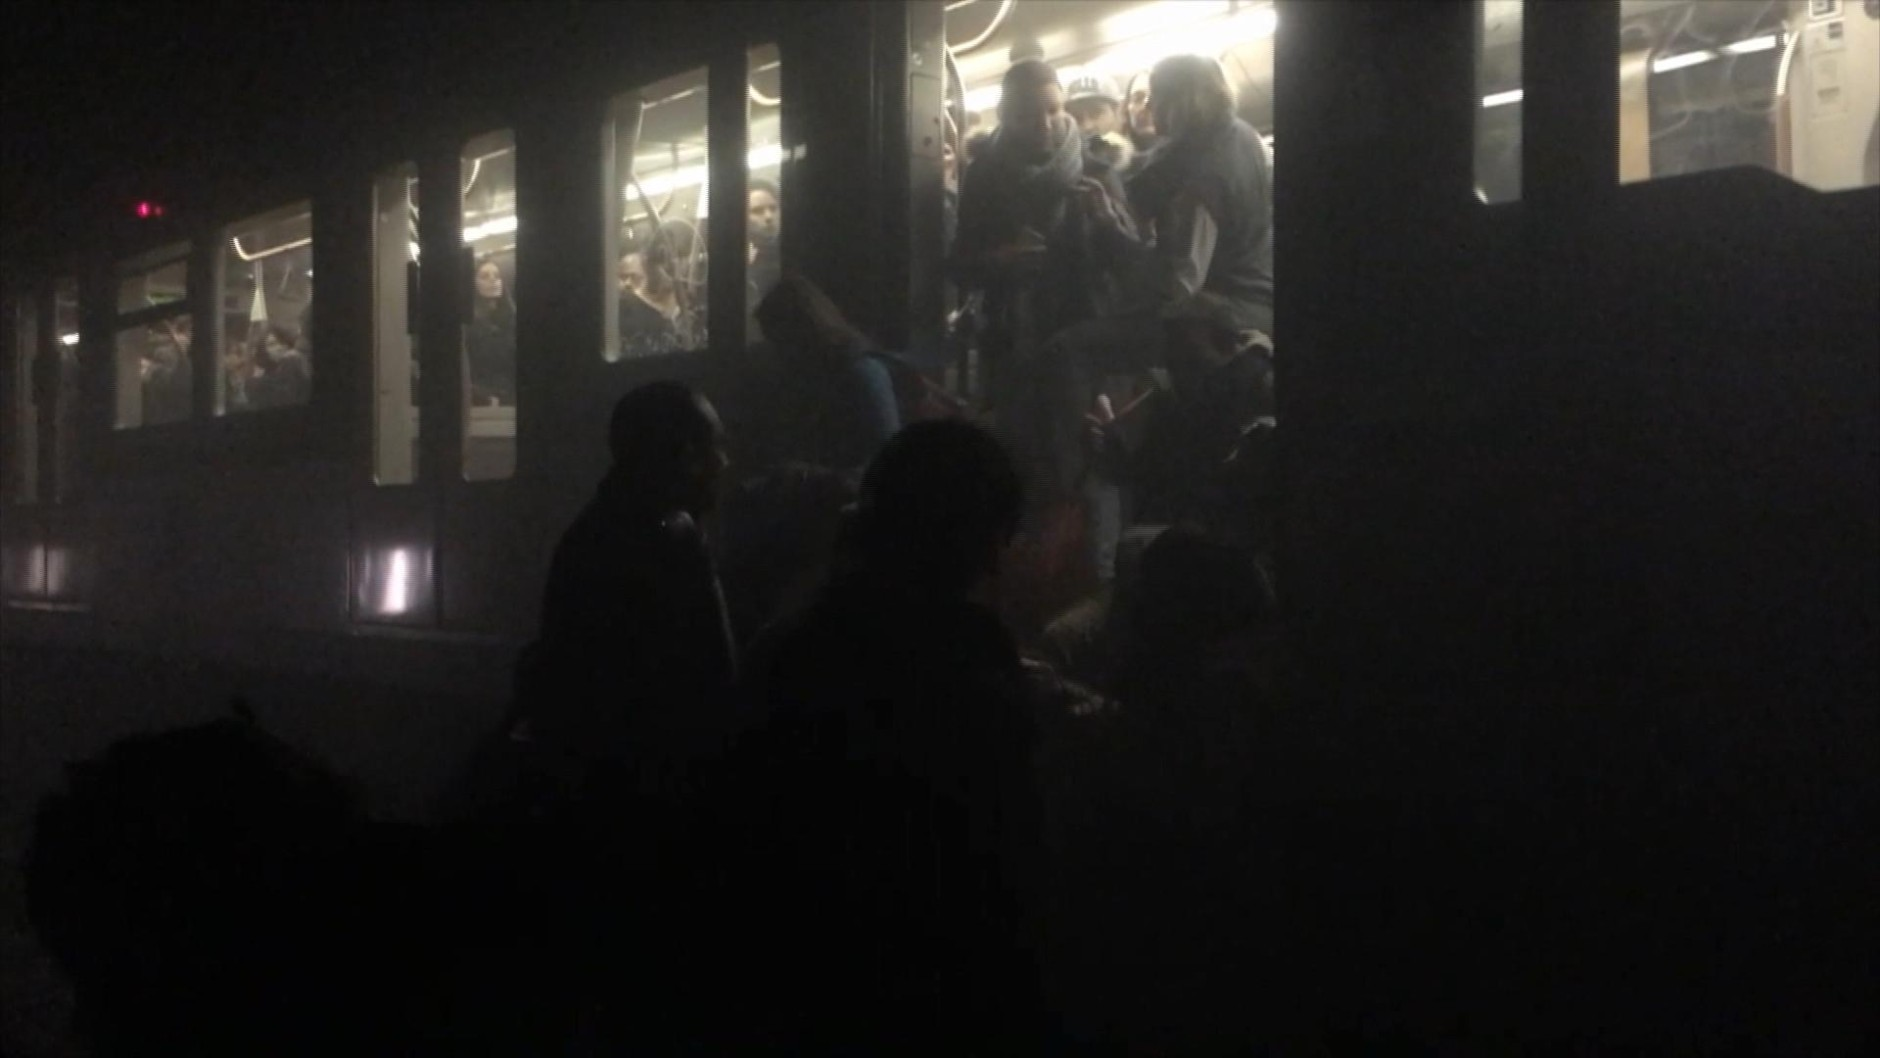 In this photo provided by Evan Lamos passengers clamber from a metro carriage after explosions in Brussels Tuesday, March 22, 2016. Authorities locked down the Belgian capital on Tuesday after explosions rocked the Brussels airport and subway system, killing  a number of people and injuring many more. Belgium raised its terror alert to its highest level, diverting arriving planes and trains and ordering people to stay where they were. Airports across Europe tightened security.  (Evan Lamos via AP)